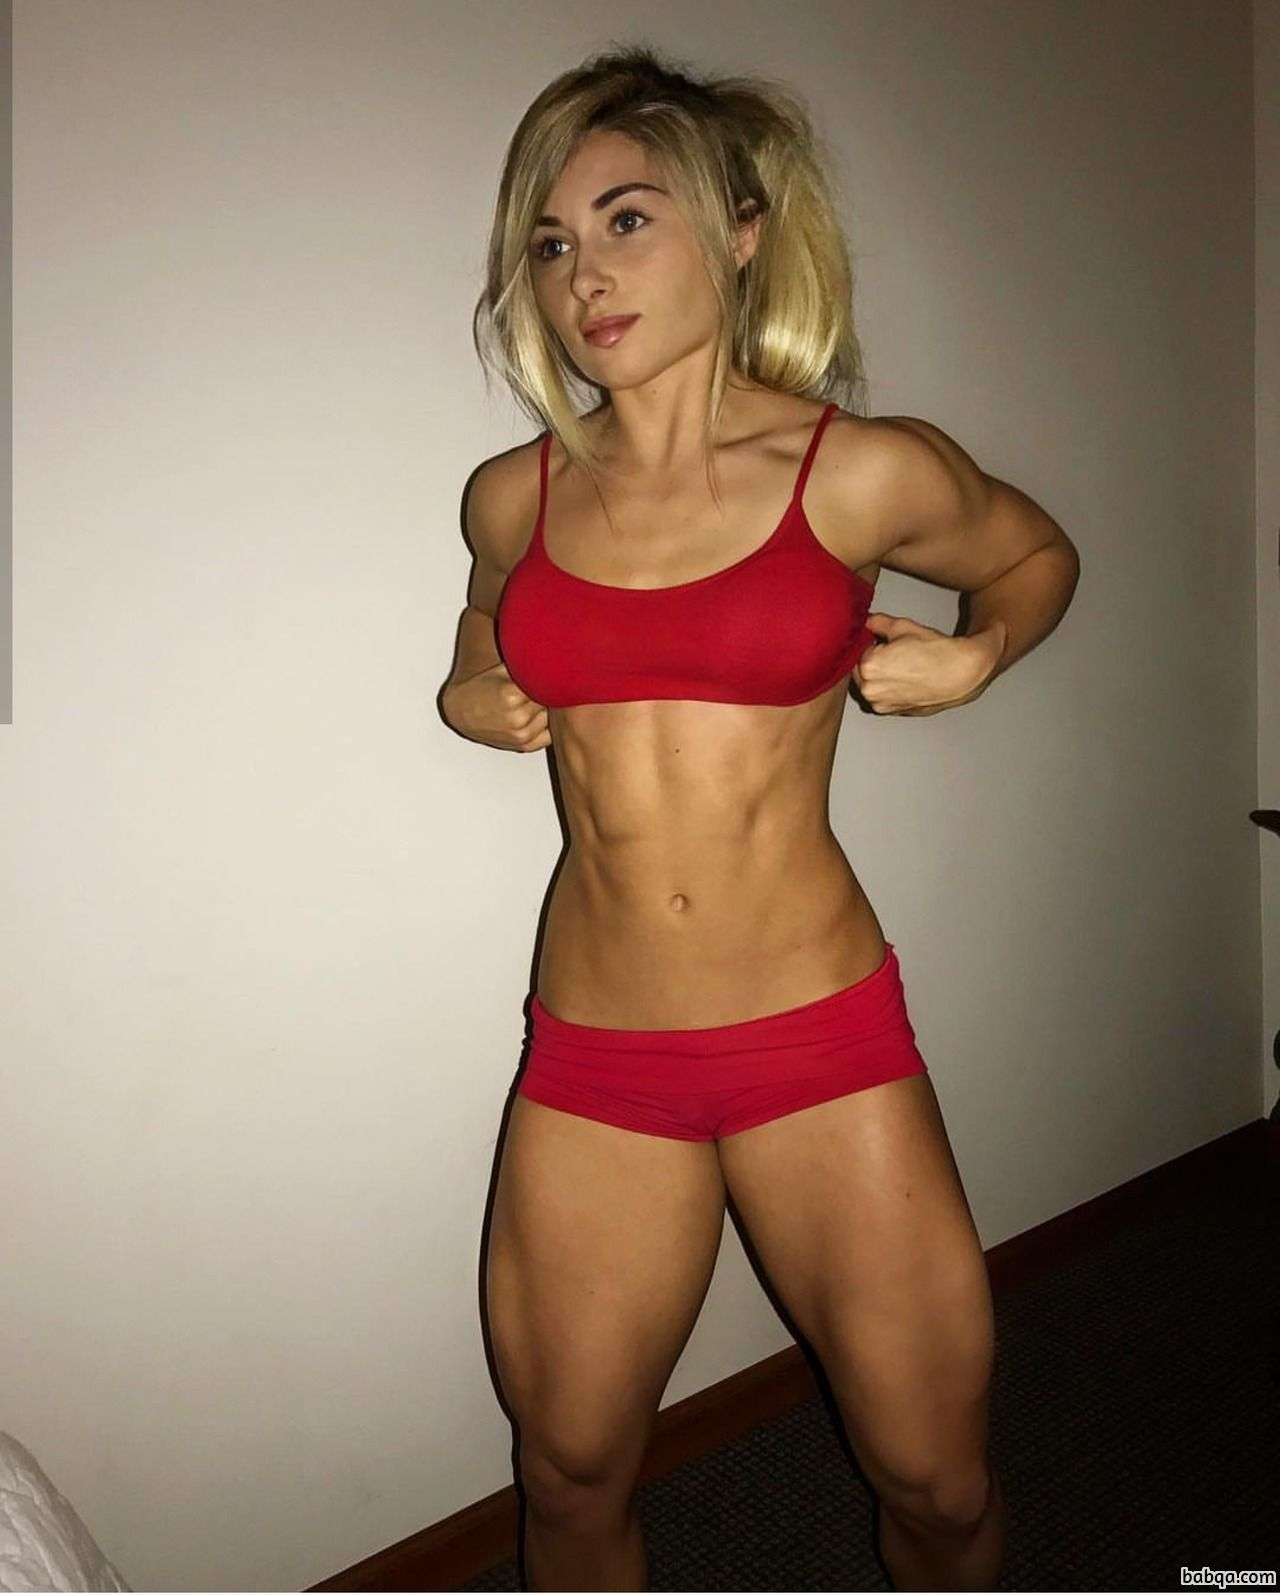 sexy asains girl repost from dailyhottfitness – most sexiest body in the world